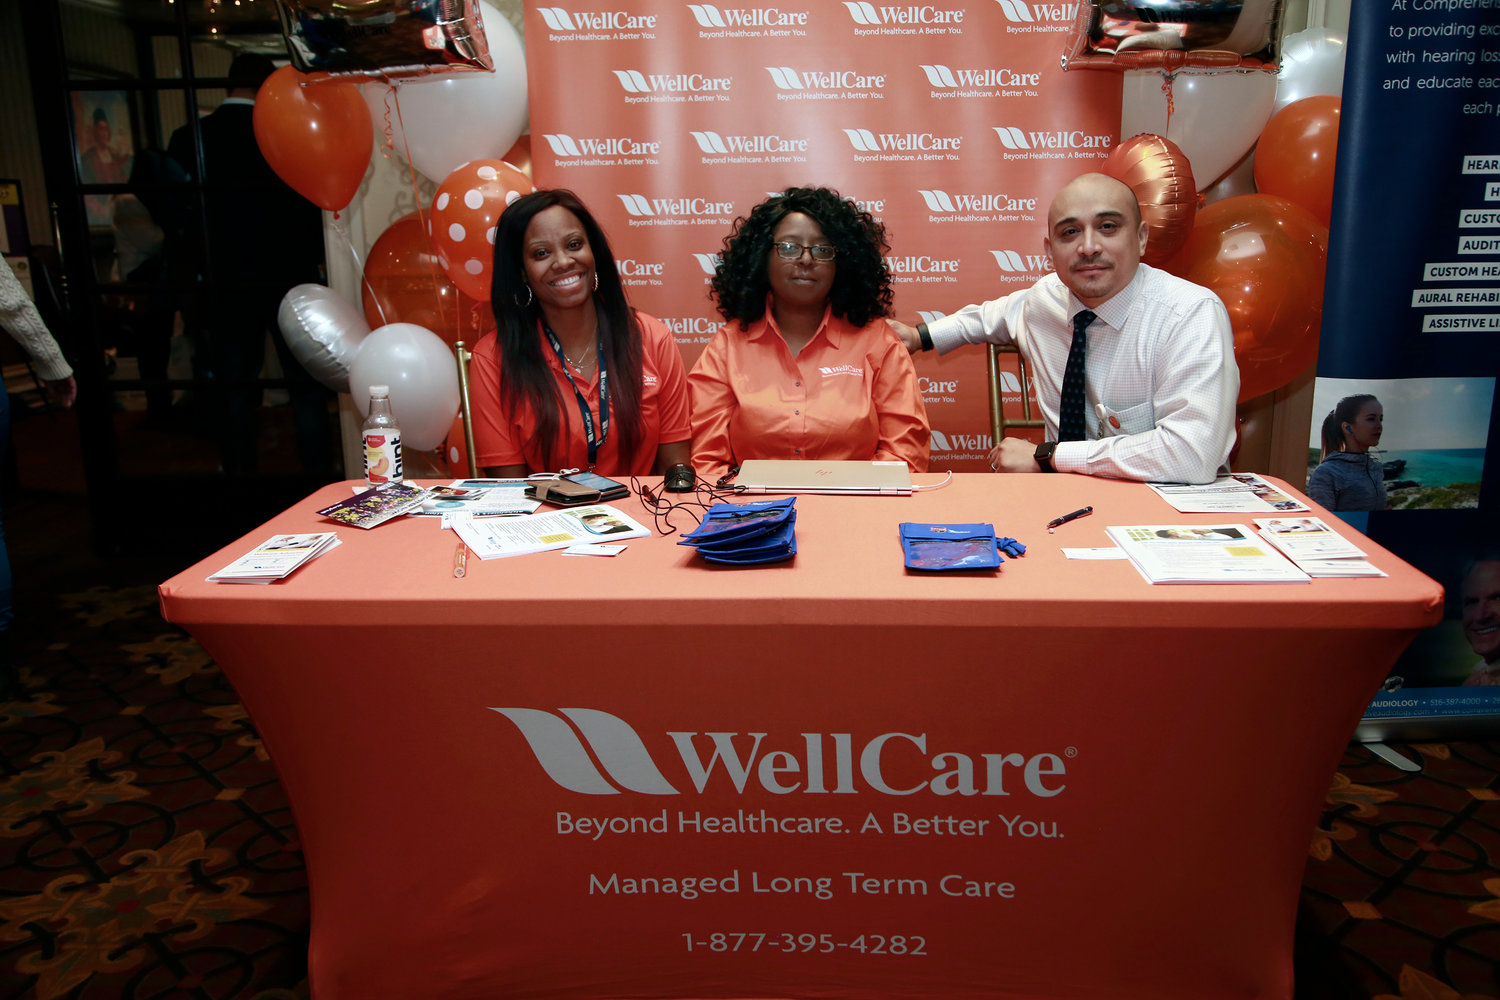 Sasha Scott, left, Eunice Rivers and Walter Aguilar educated seniors about WellCare, an insurance program that focuses on long-term care.